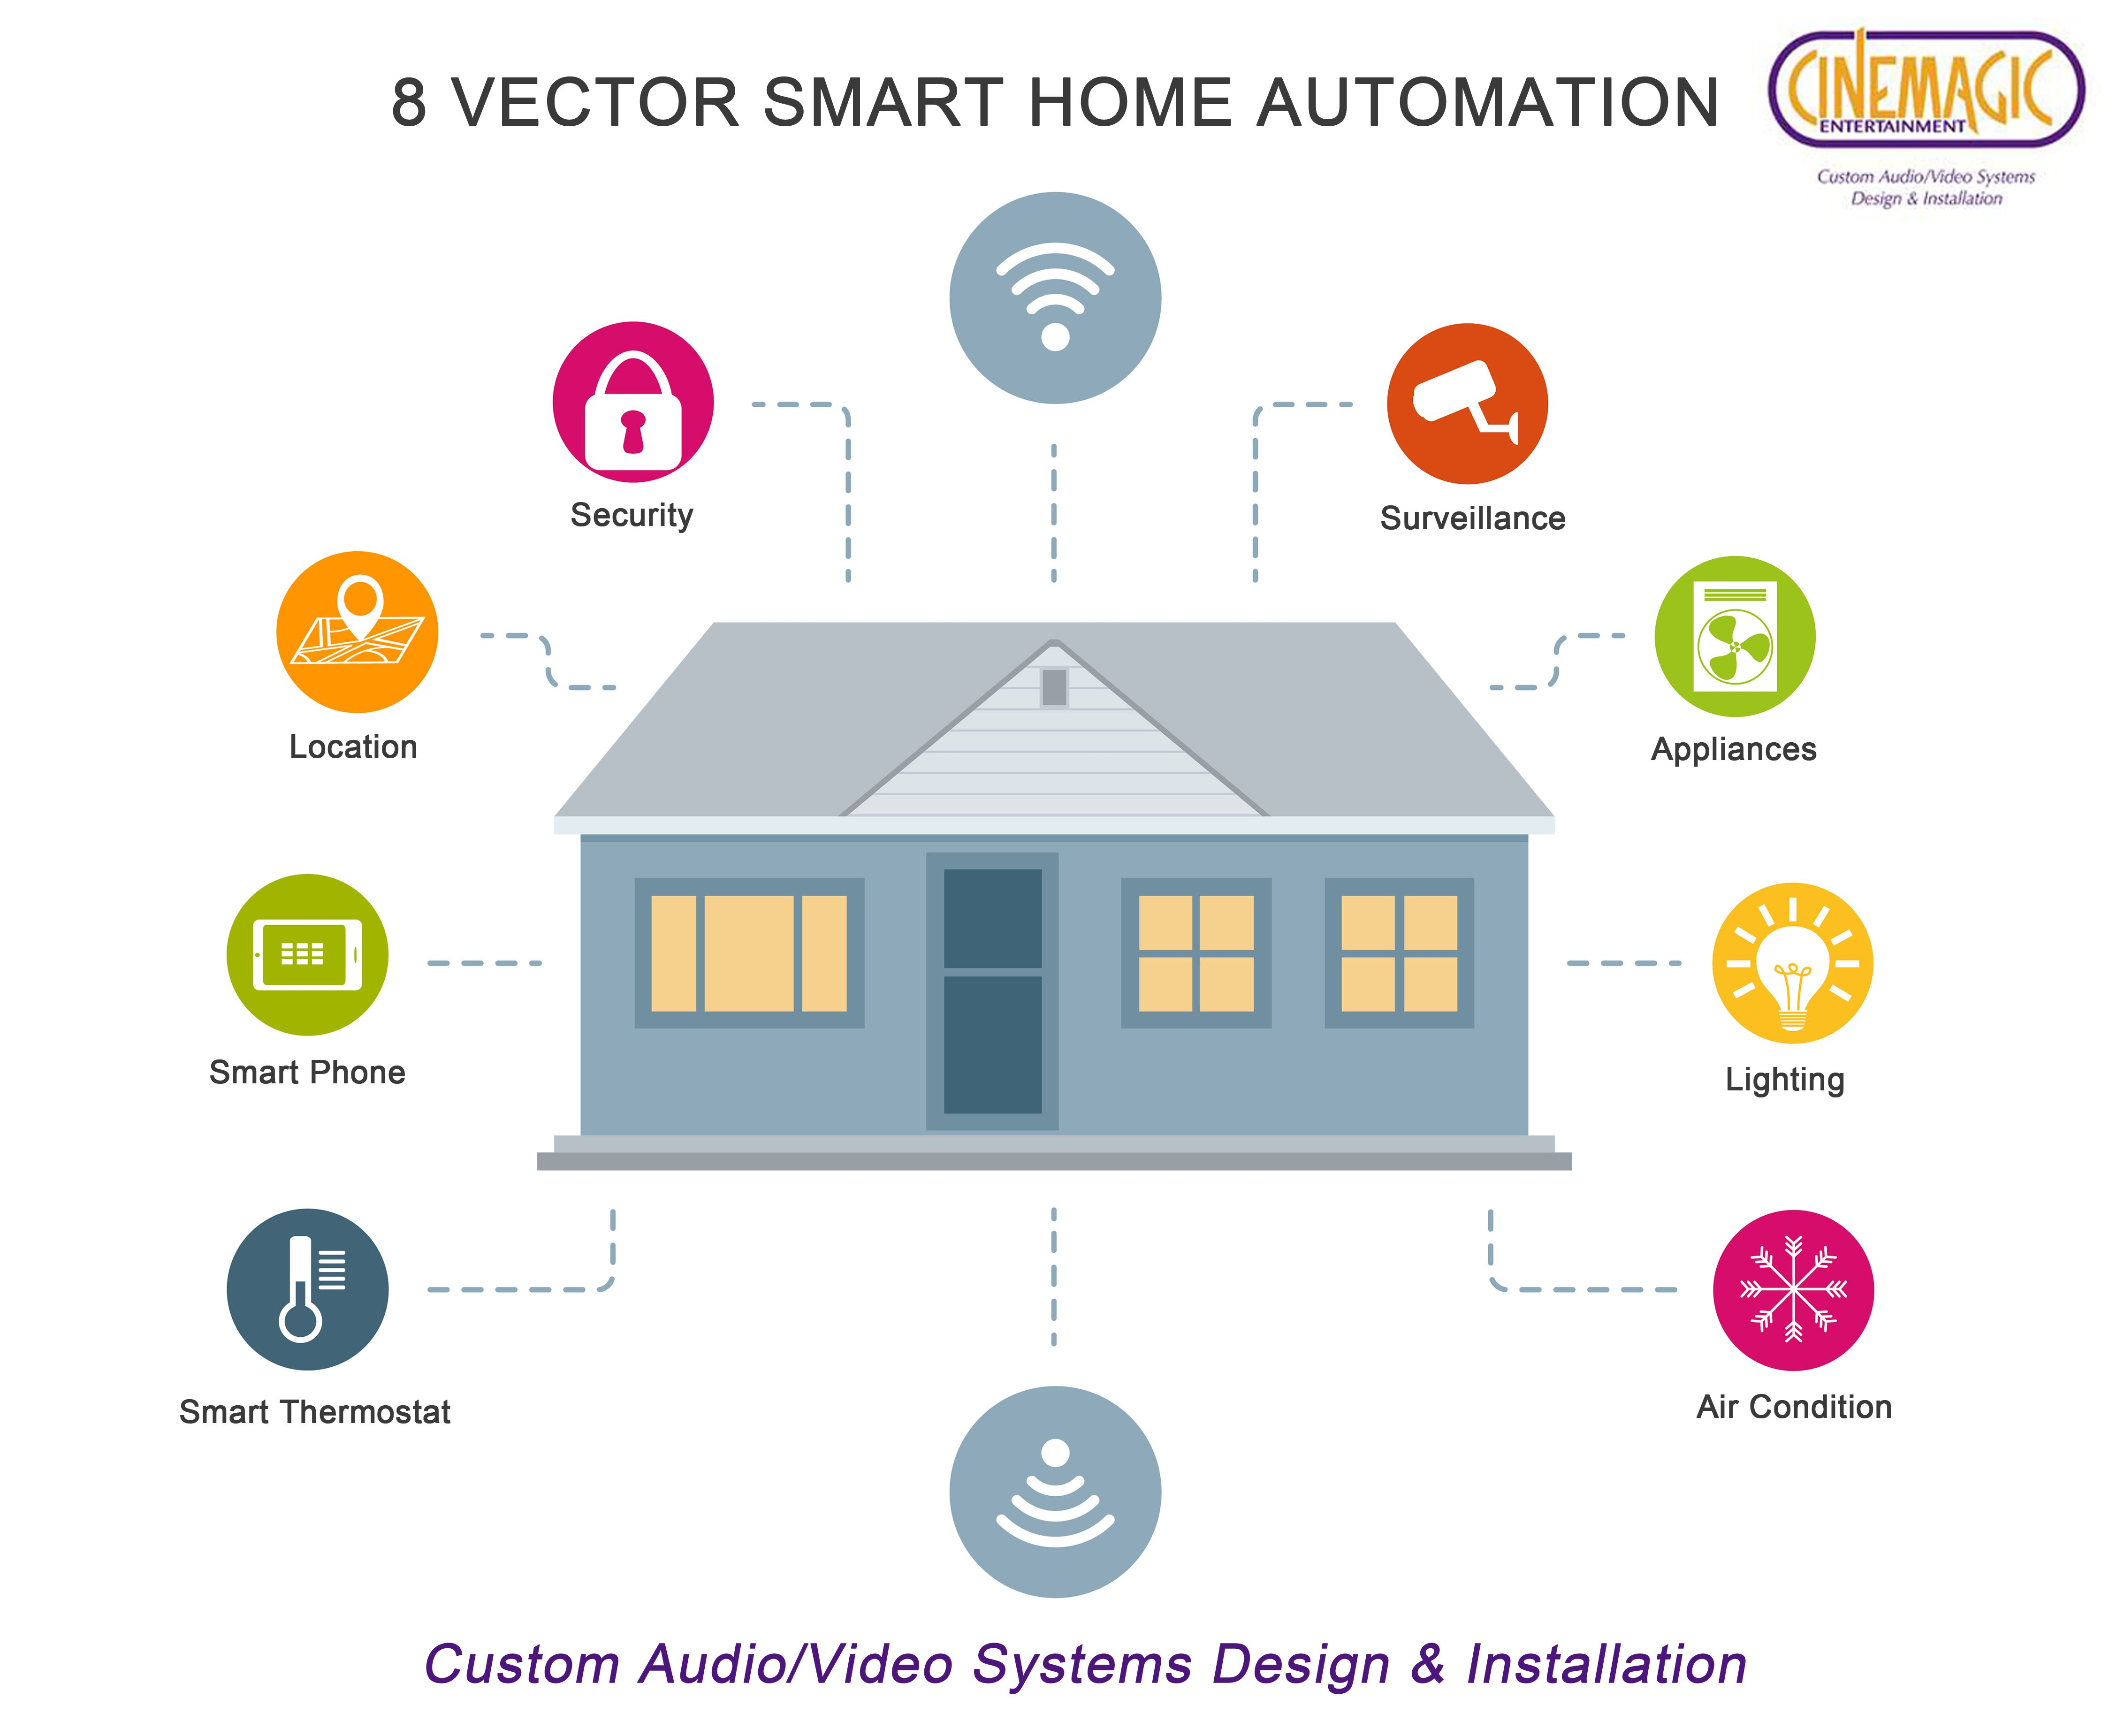 8 Vectors Of Smart Homeautomation Service In Newjersey For Custom Home Automation Inquiry Call 973 310 40 Smart Home Automation Home Automation Smart Home